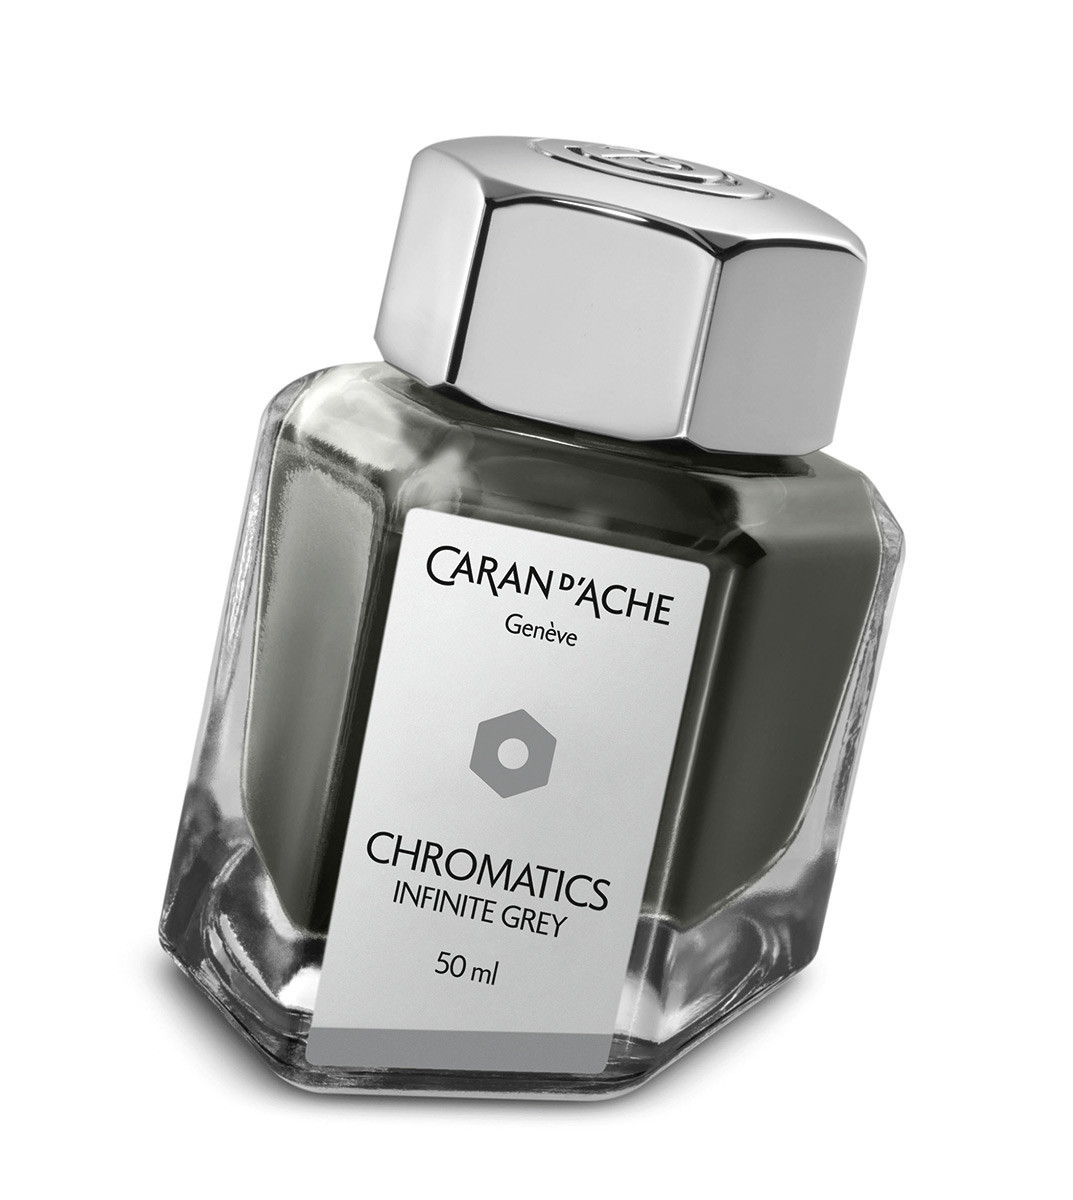 Caran d'Ache Chromatics Ink Bottle (50ml)